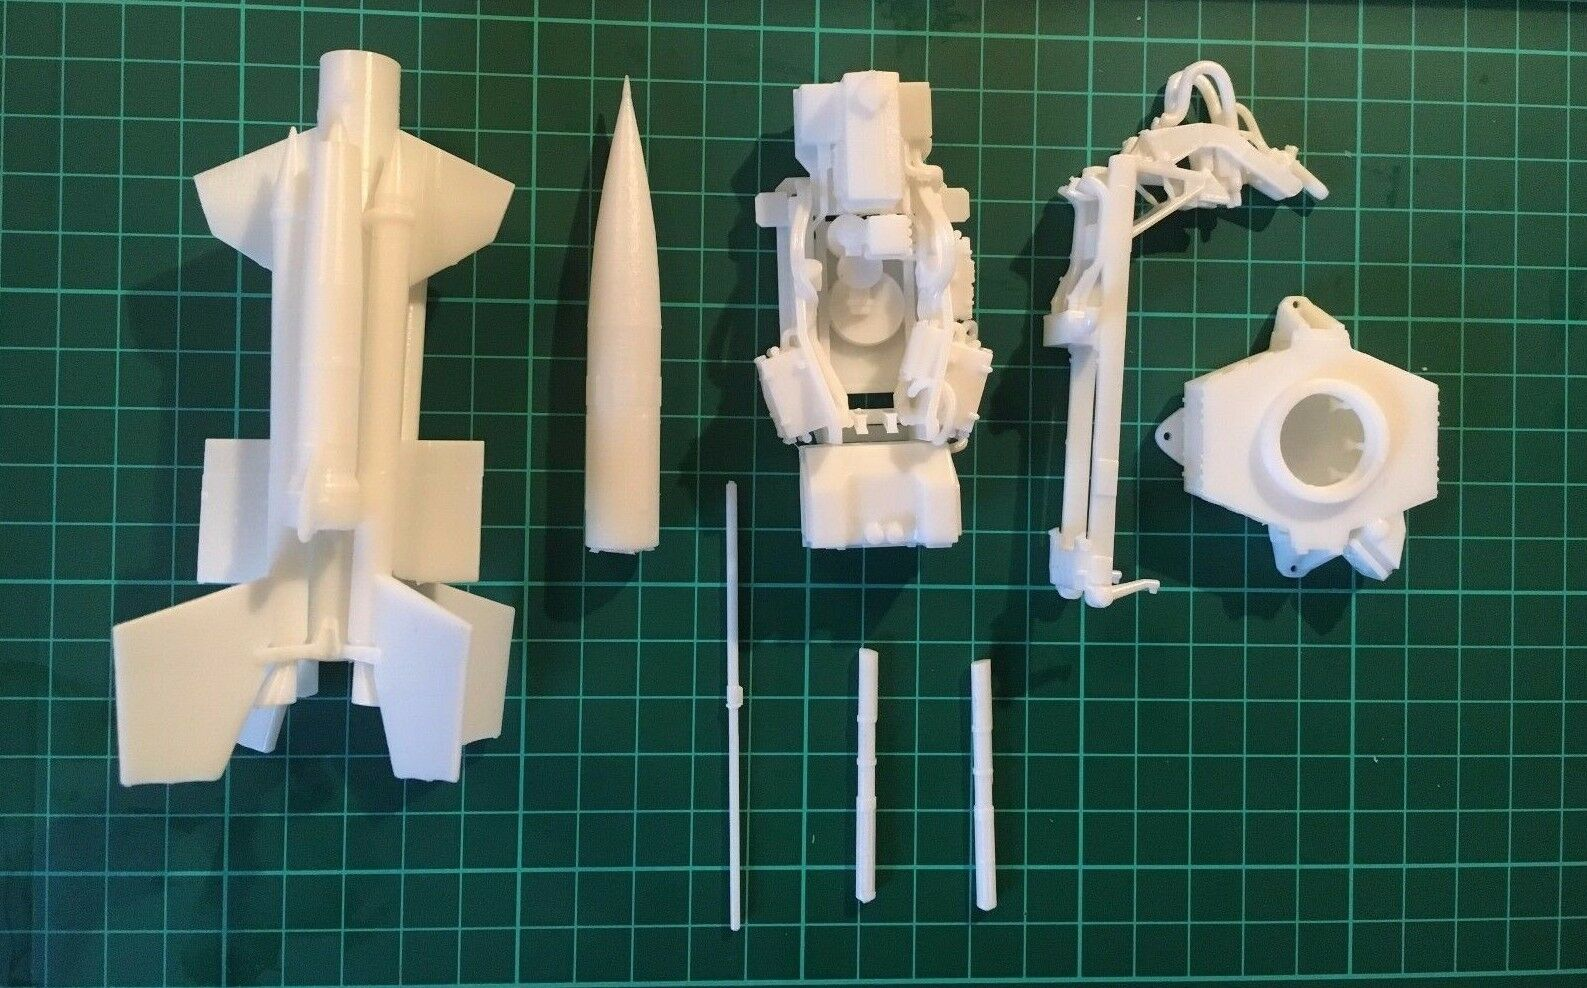 1 32 Scale Bristol Bloodhound Missile & Launch Pad [3D Printed Model]